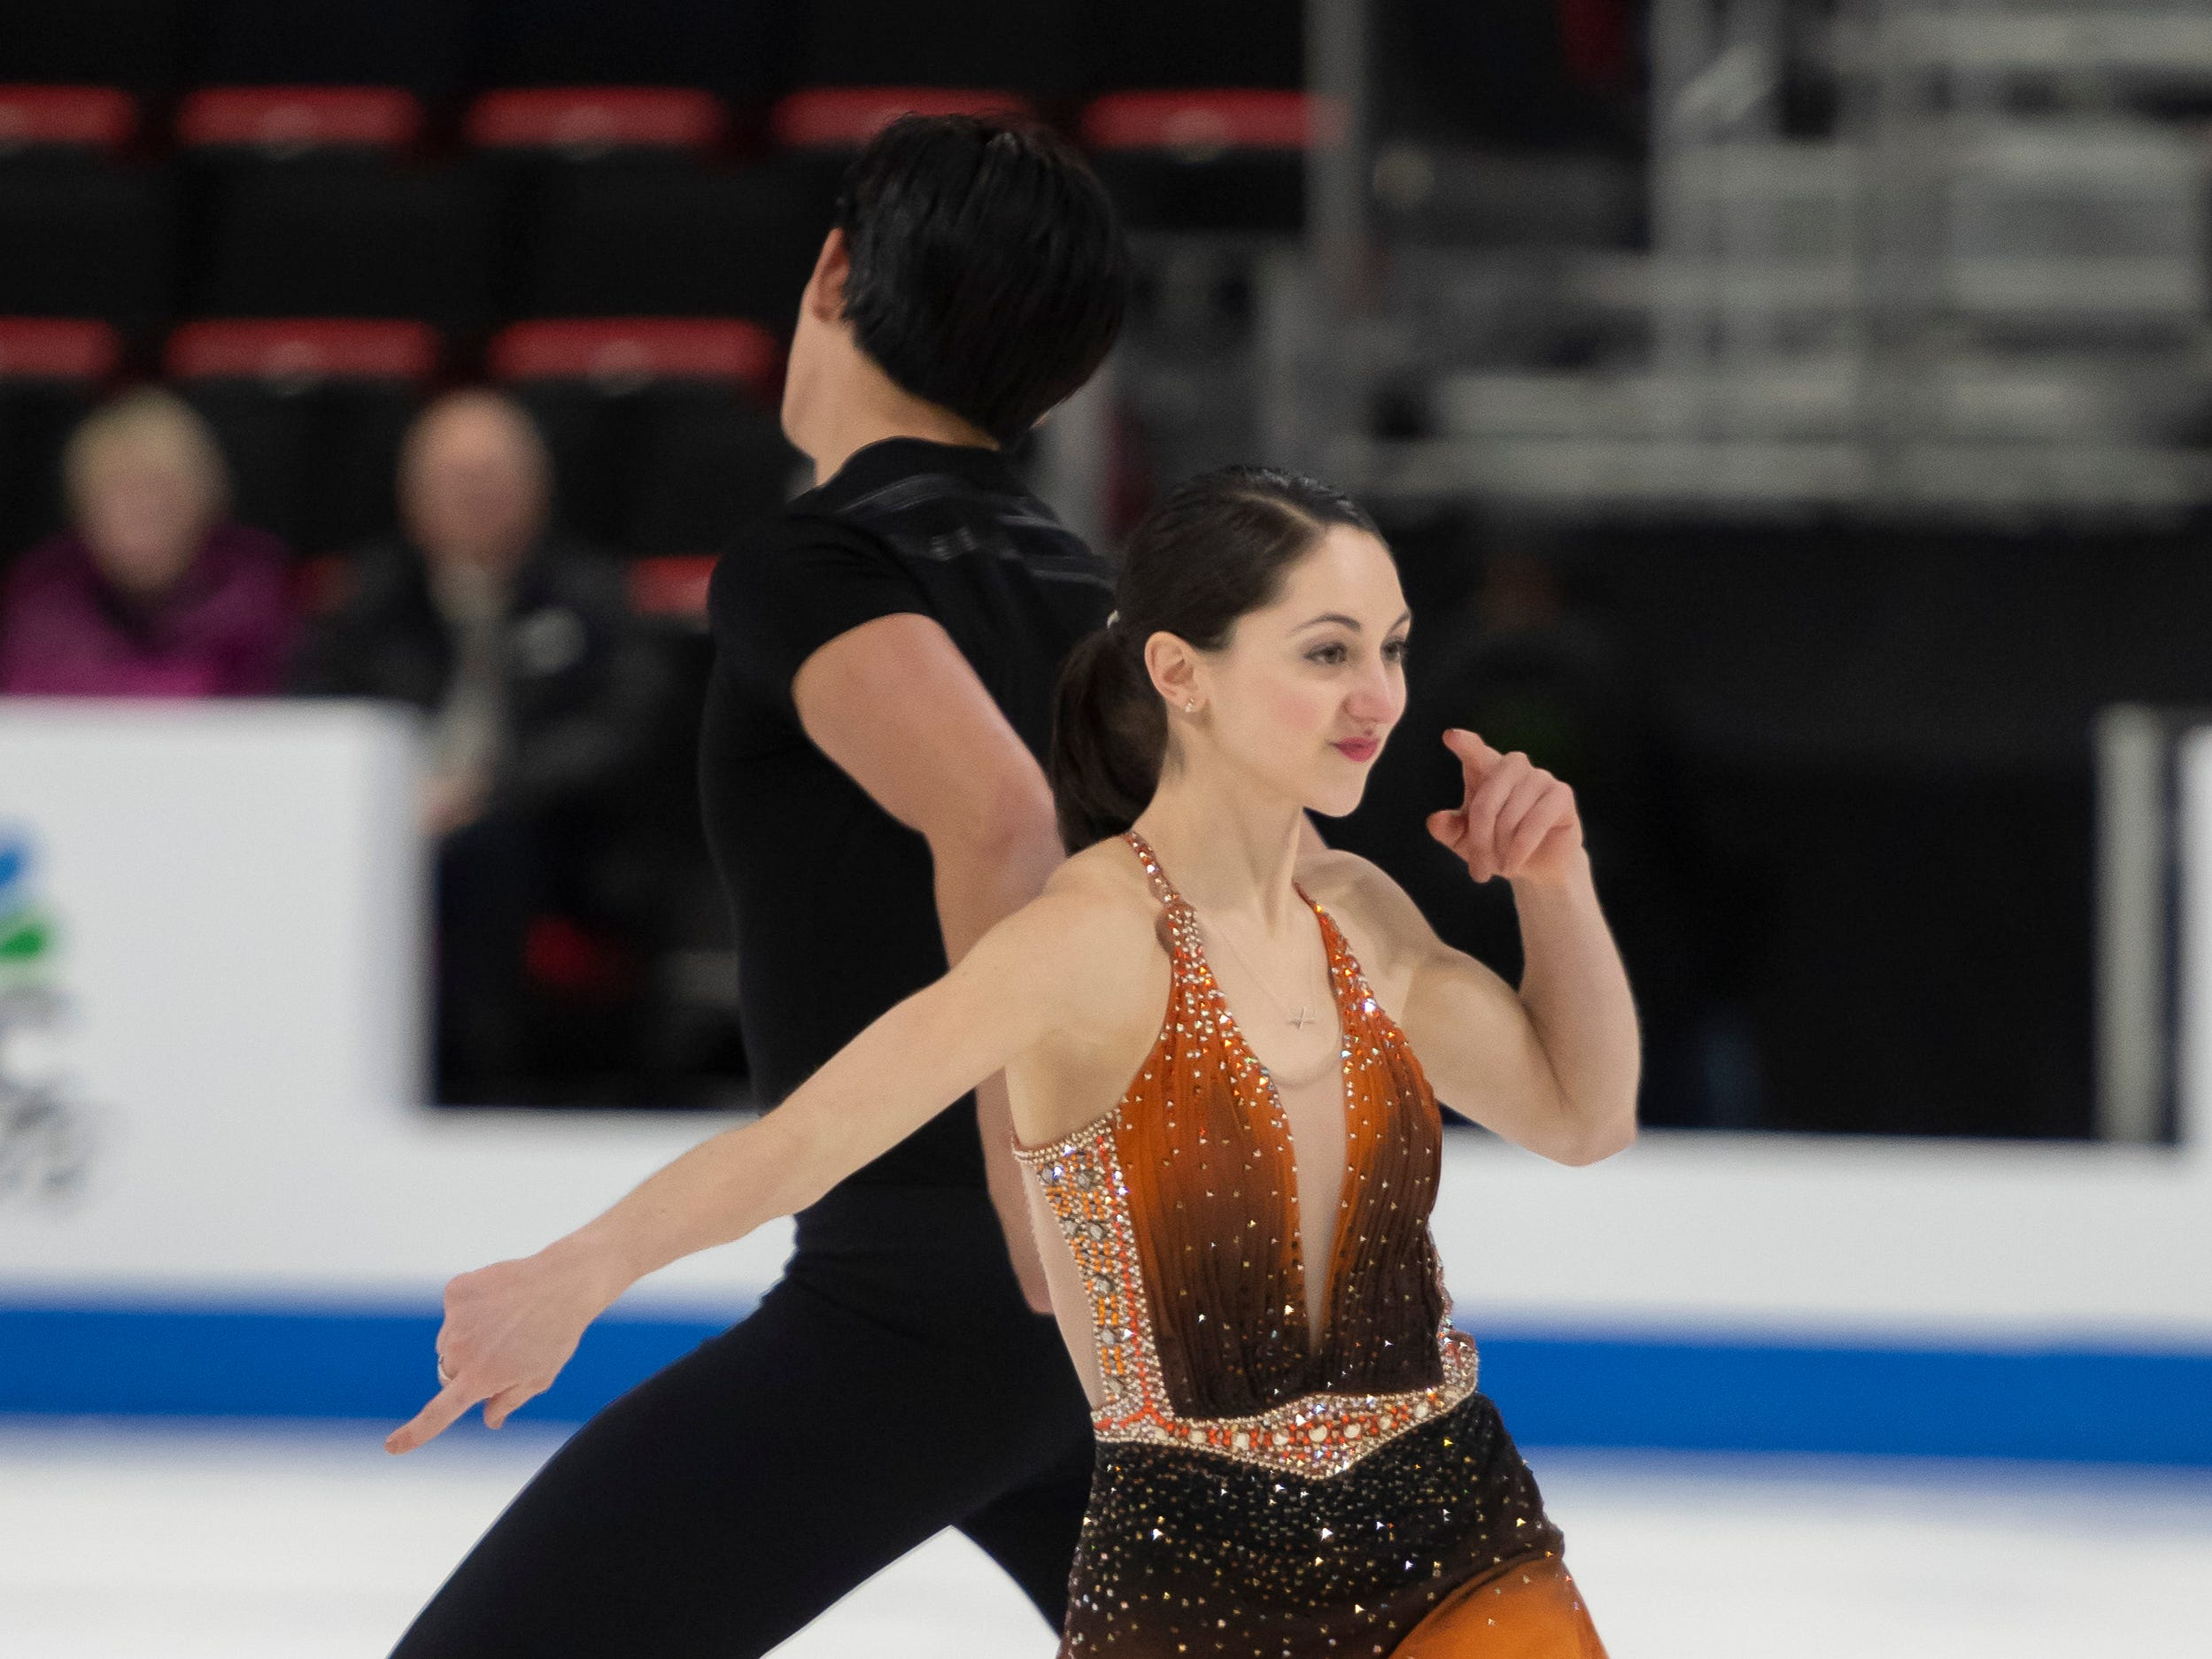 Olivia Serafini and Mervin Tran compete in the senior pairs short program at the U.S. Figure Skating Championships.